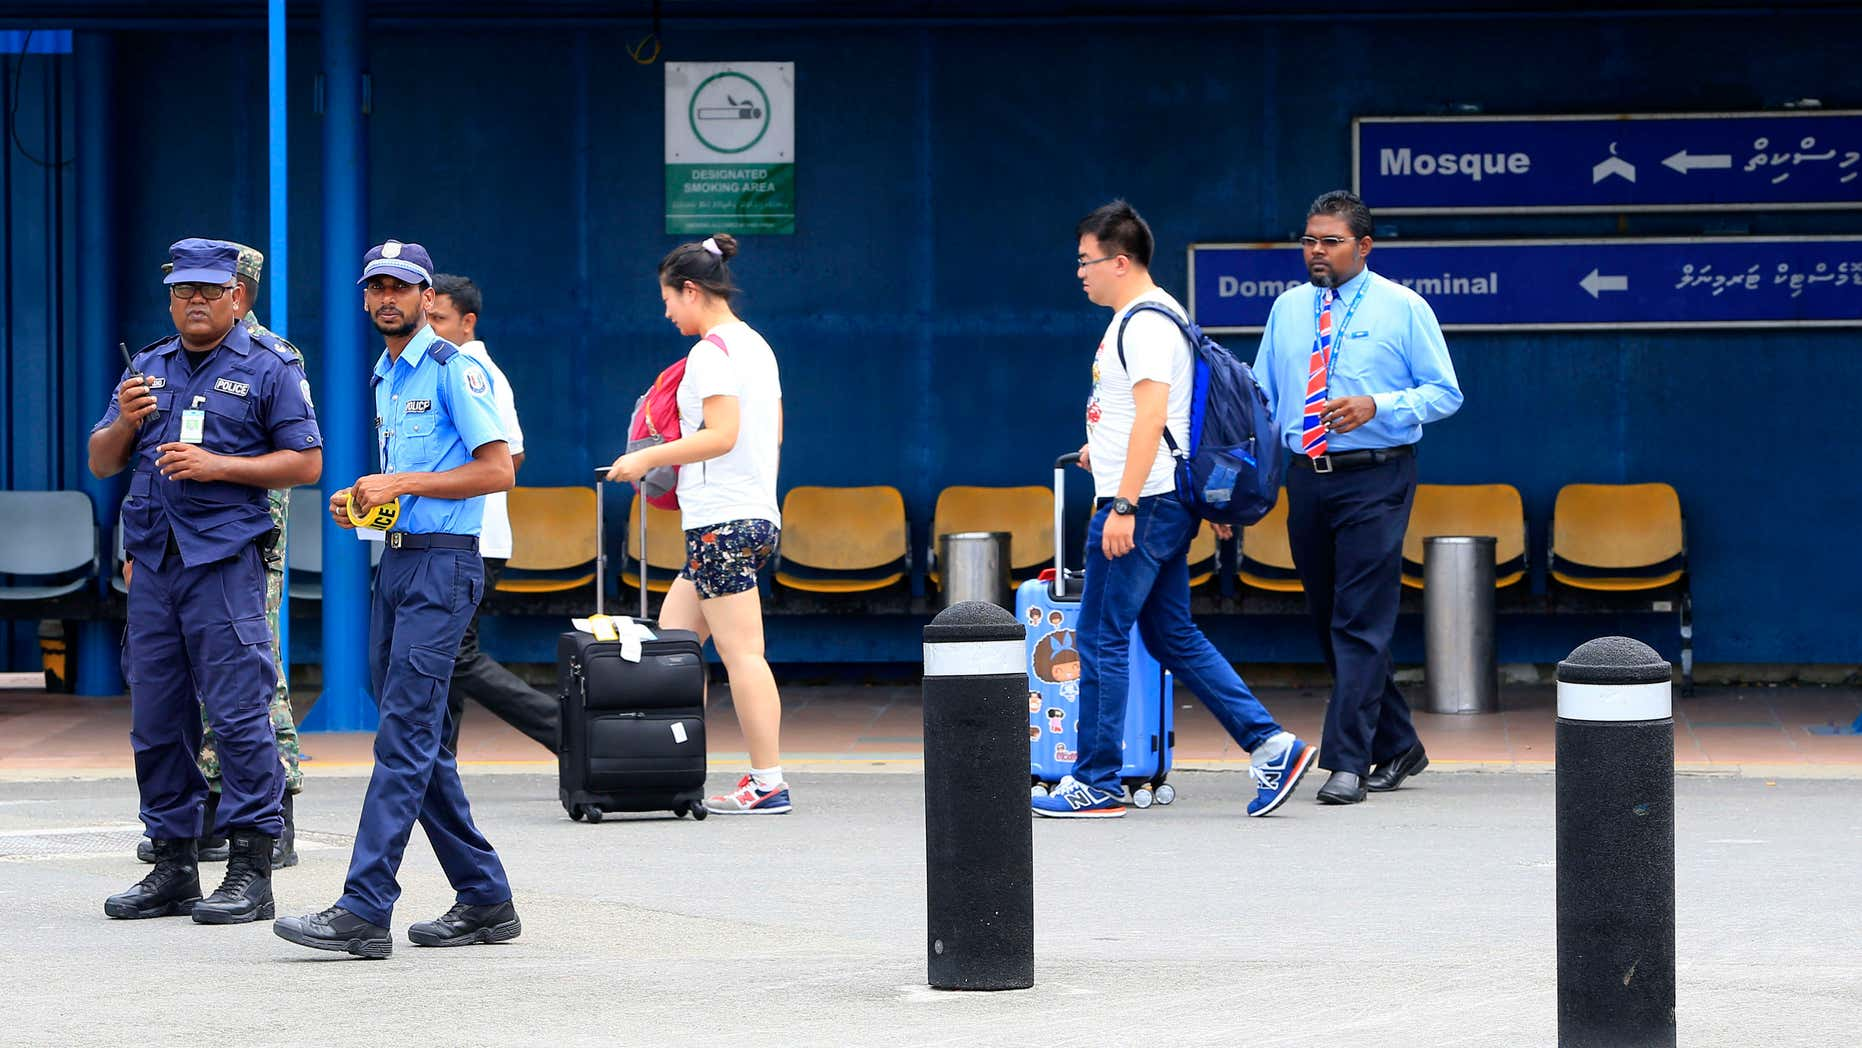 Oct. 24, 2015: Police prepare to cordon off an area before the arrival of Vice President Ahmed Adheeb at the International Airport in Male, Maldives.